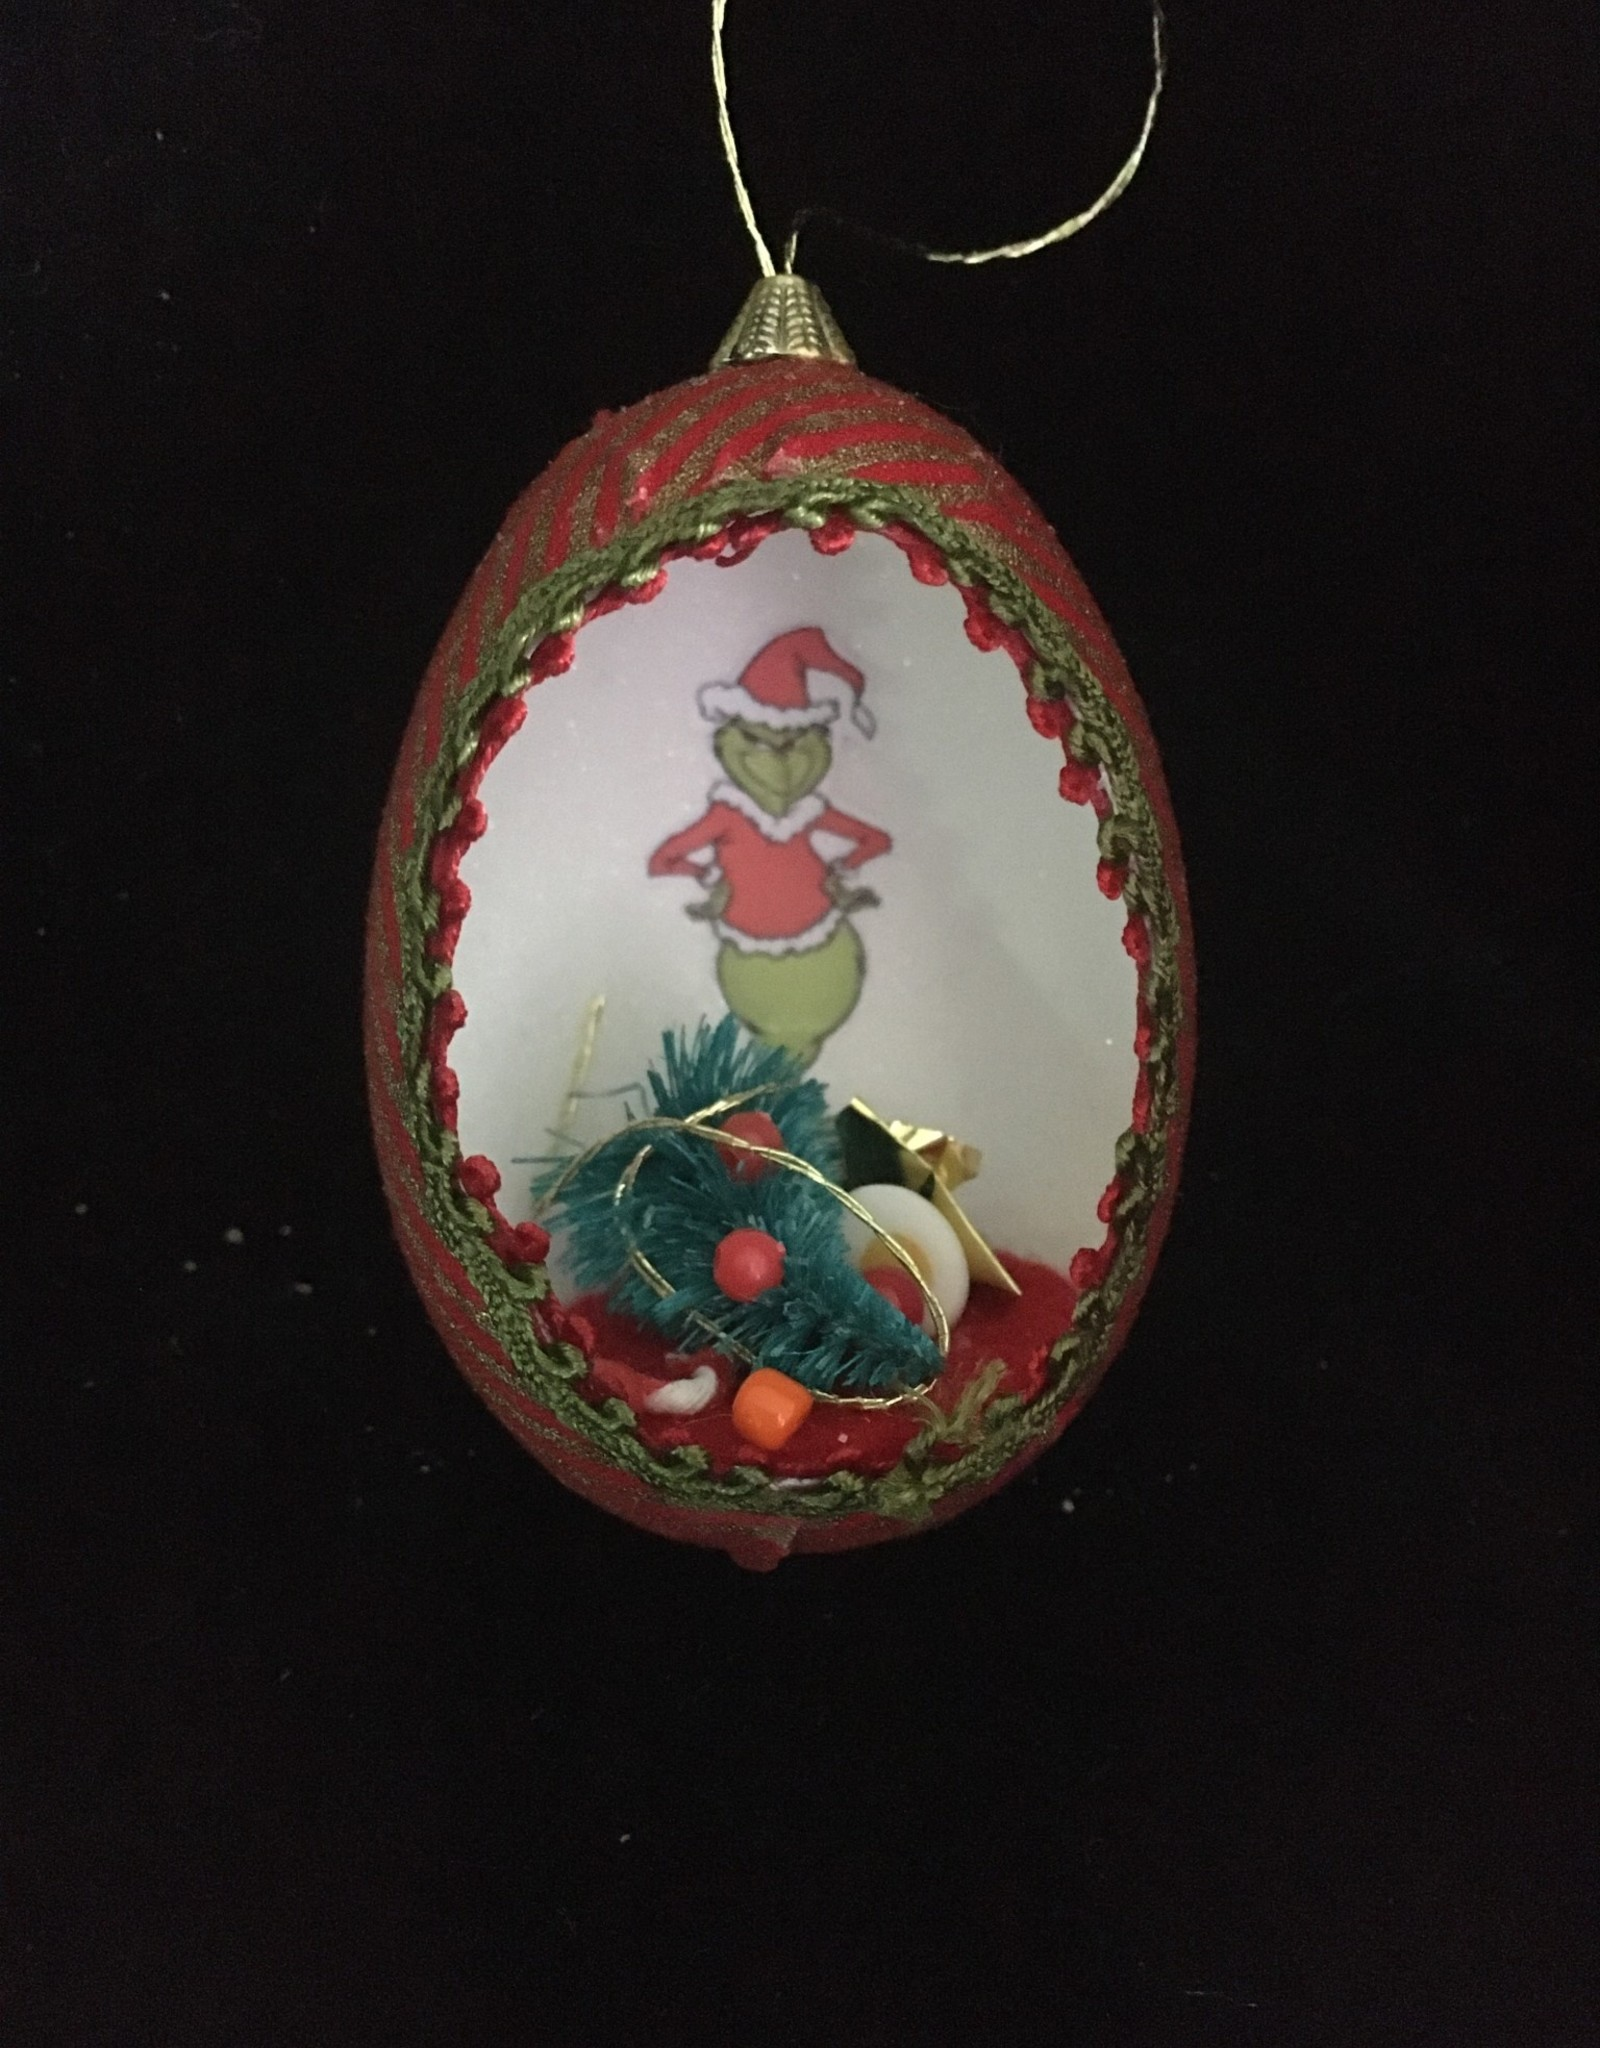 Ammi Brooks Grinch Real Egg Ornament